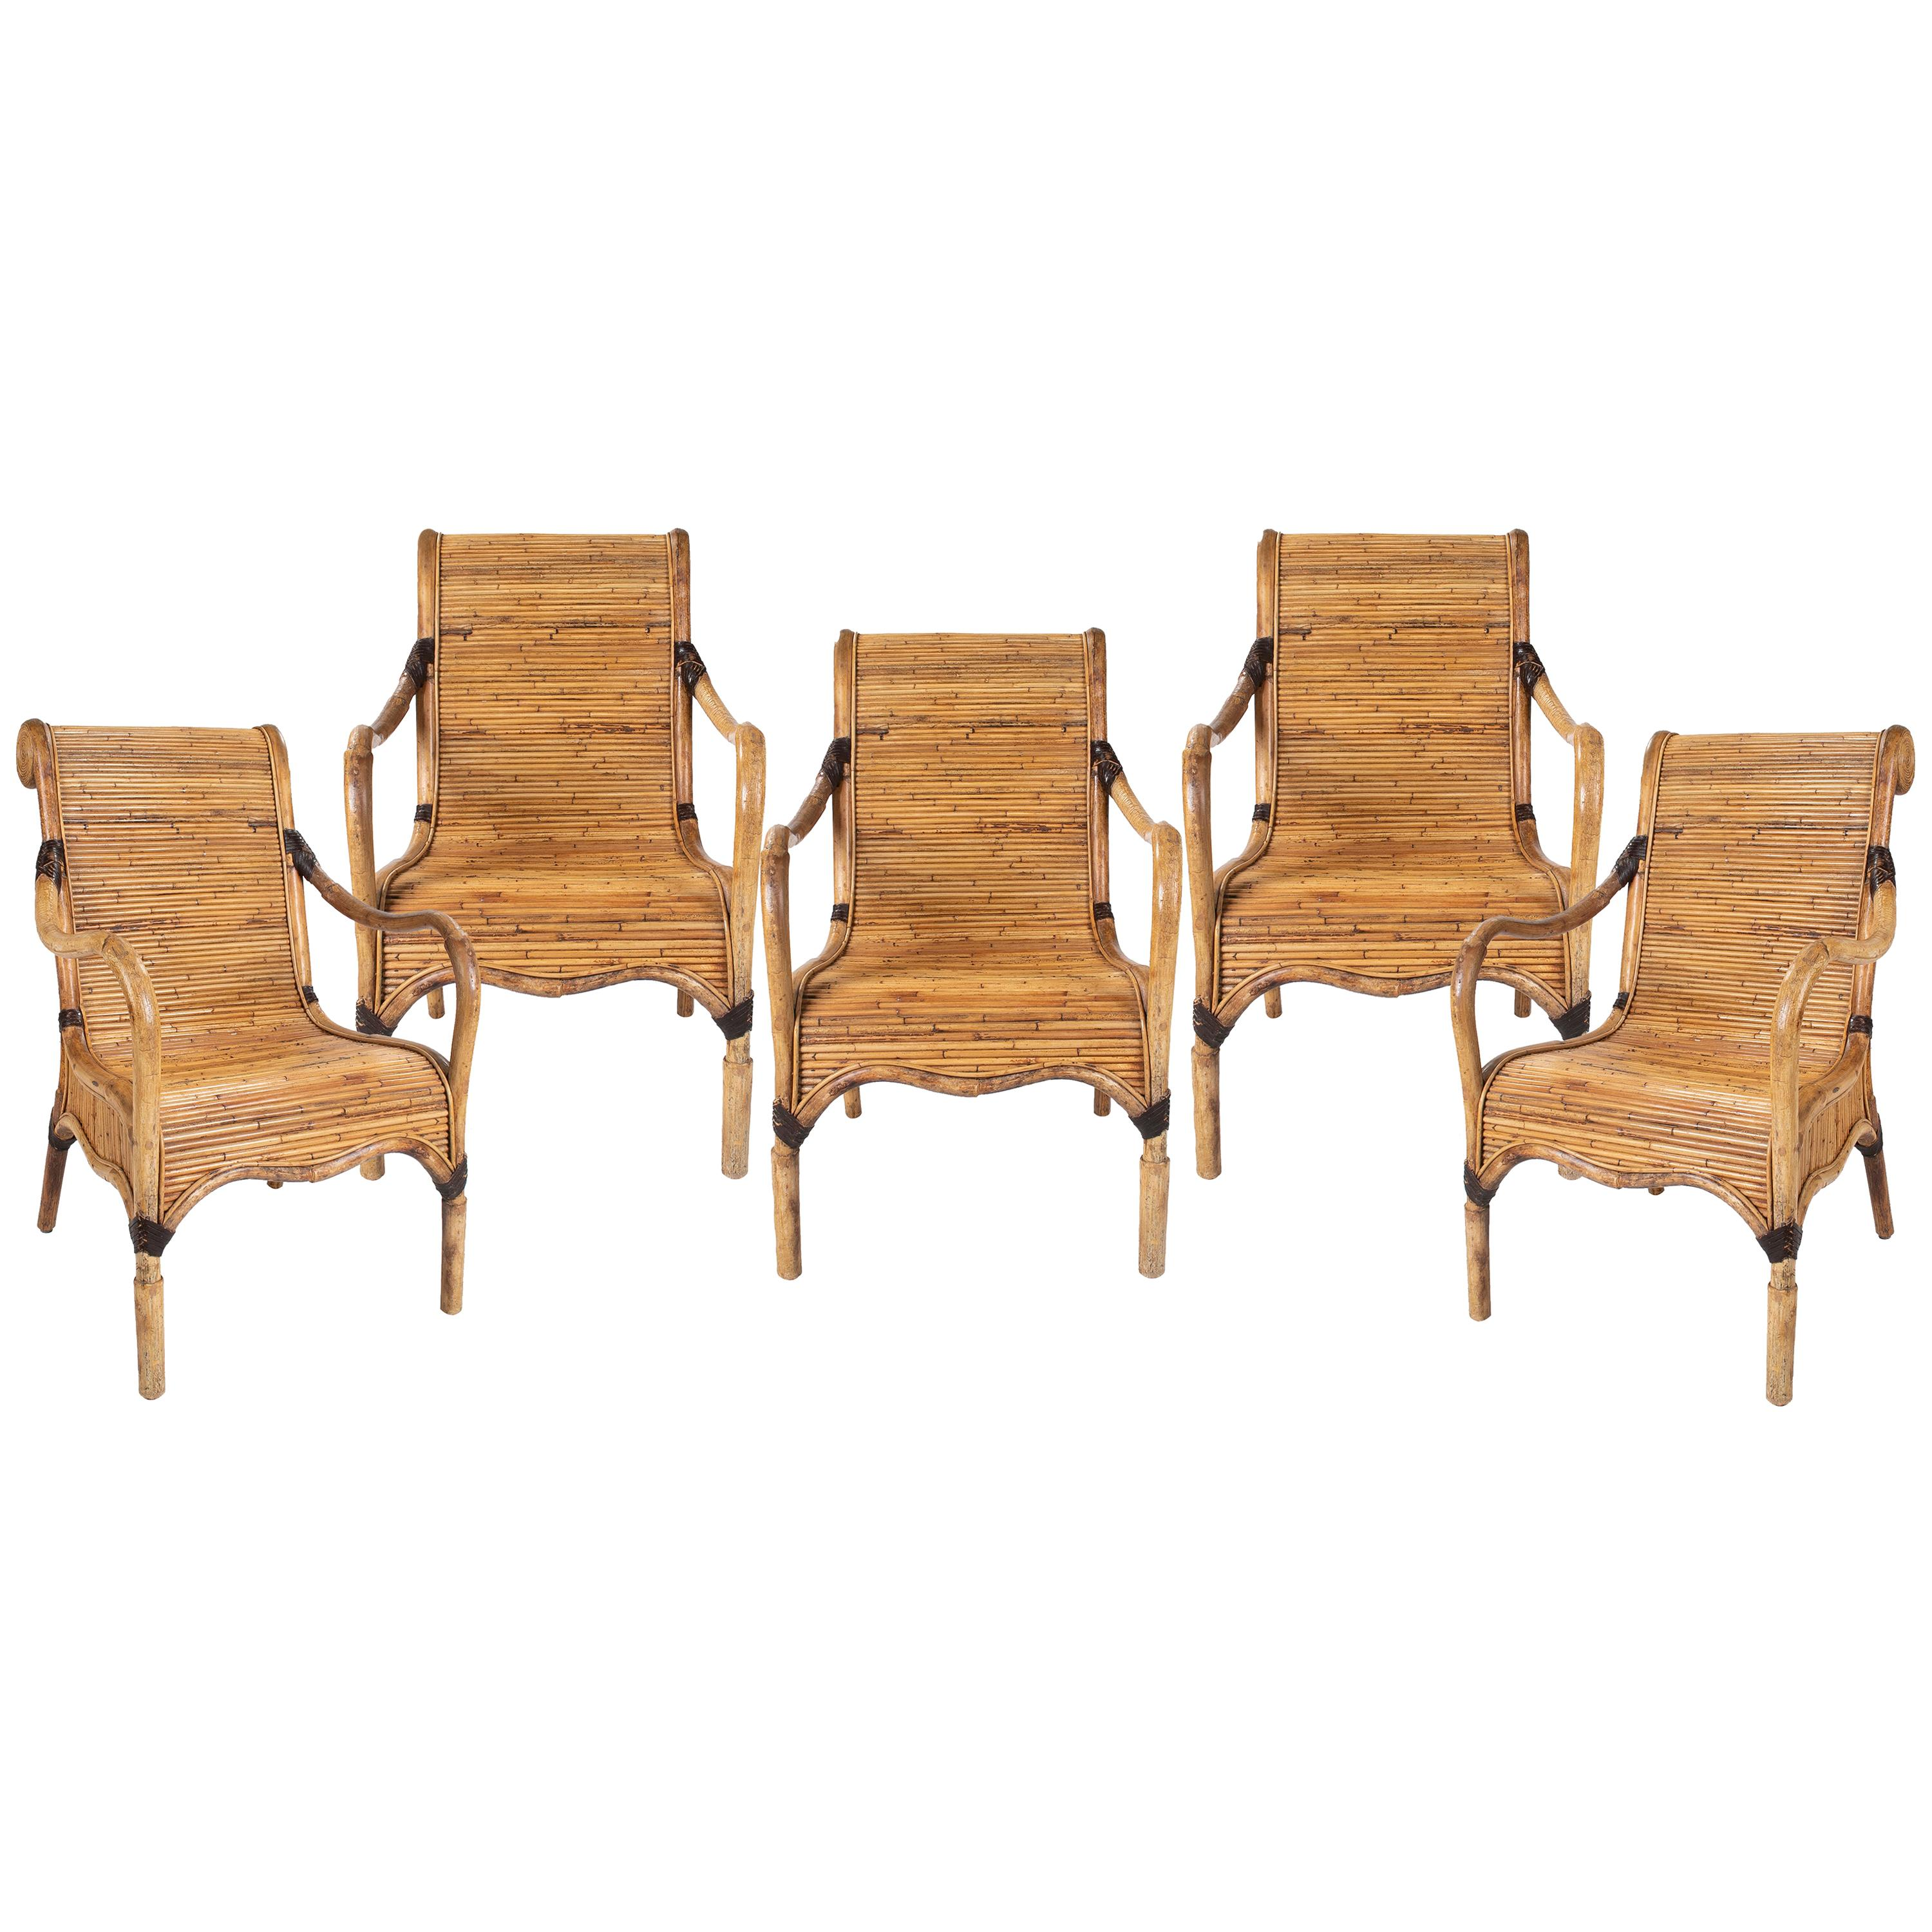 1980s Set of Five Spanish Hand Woven Bamboo Armchairs